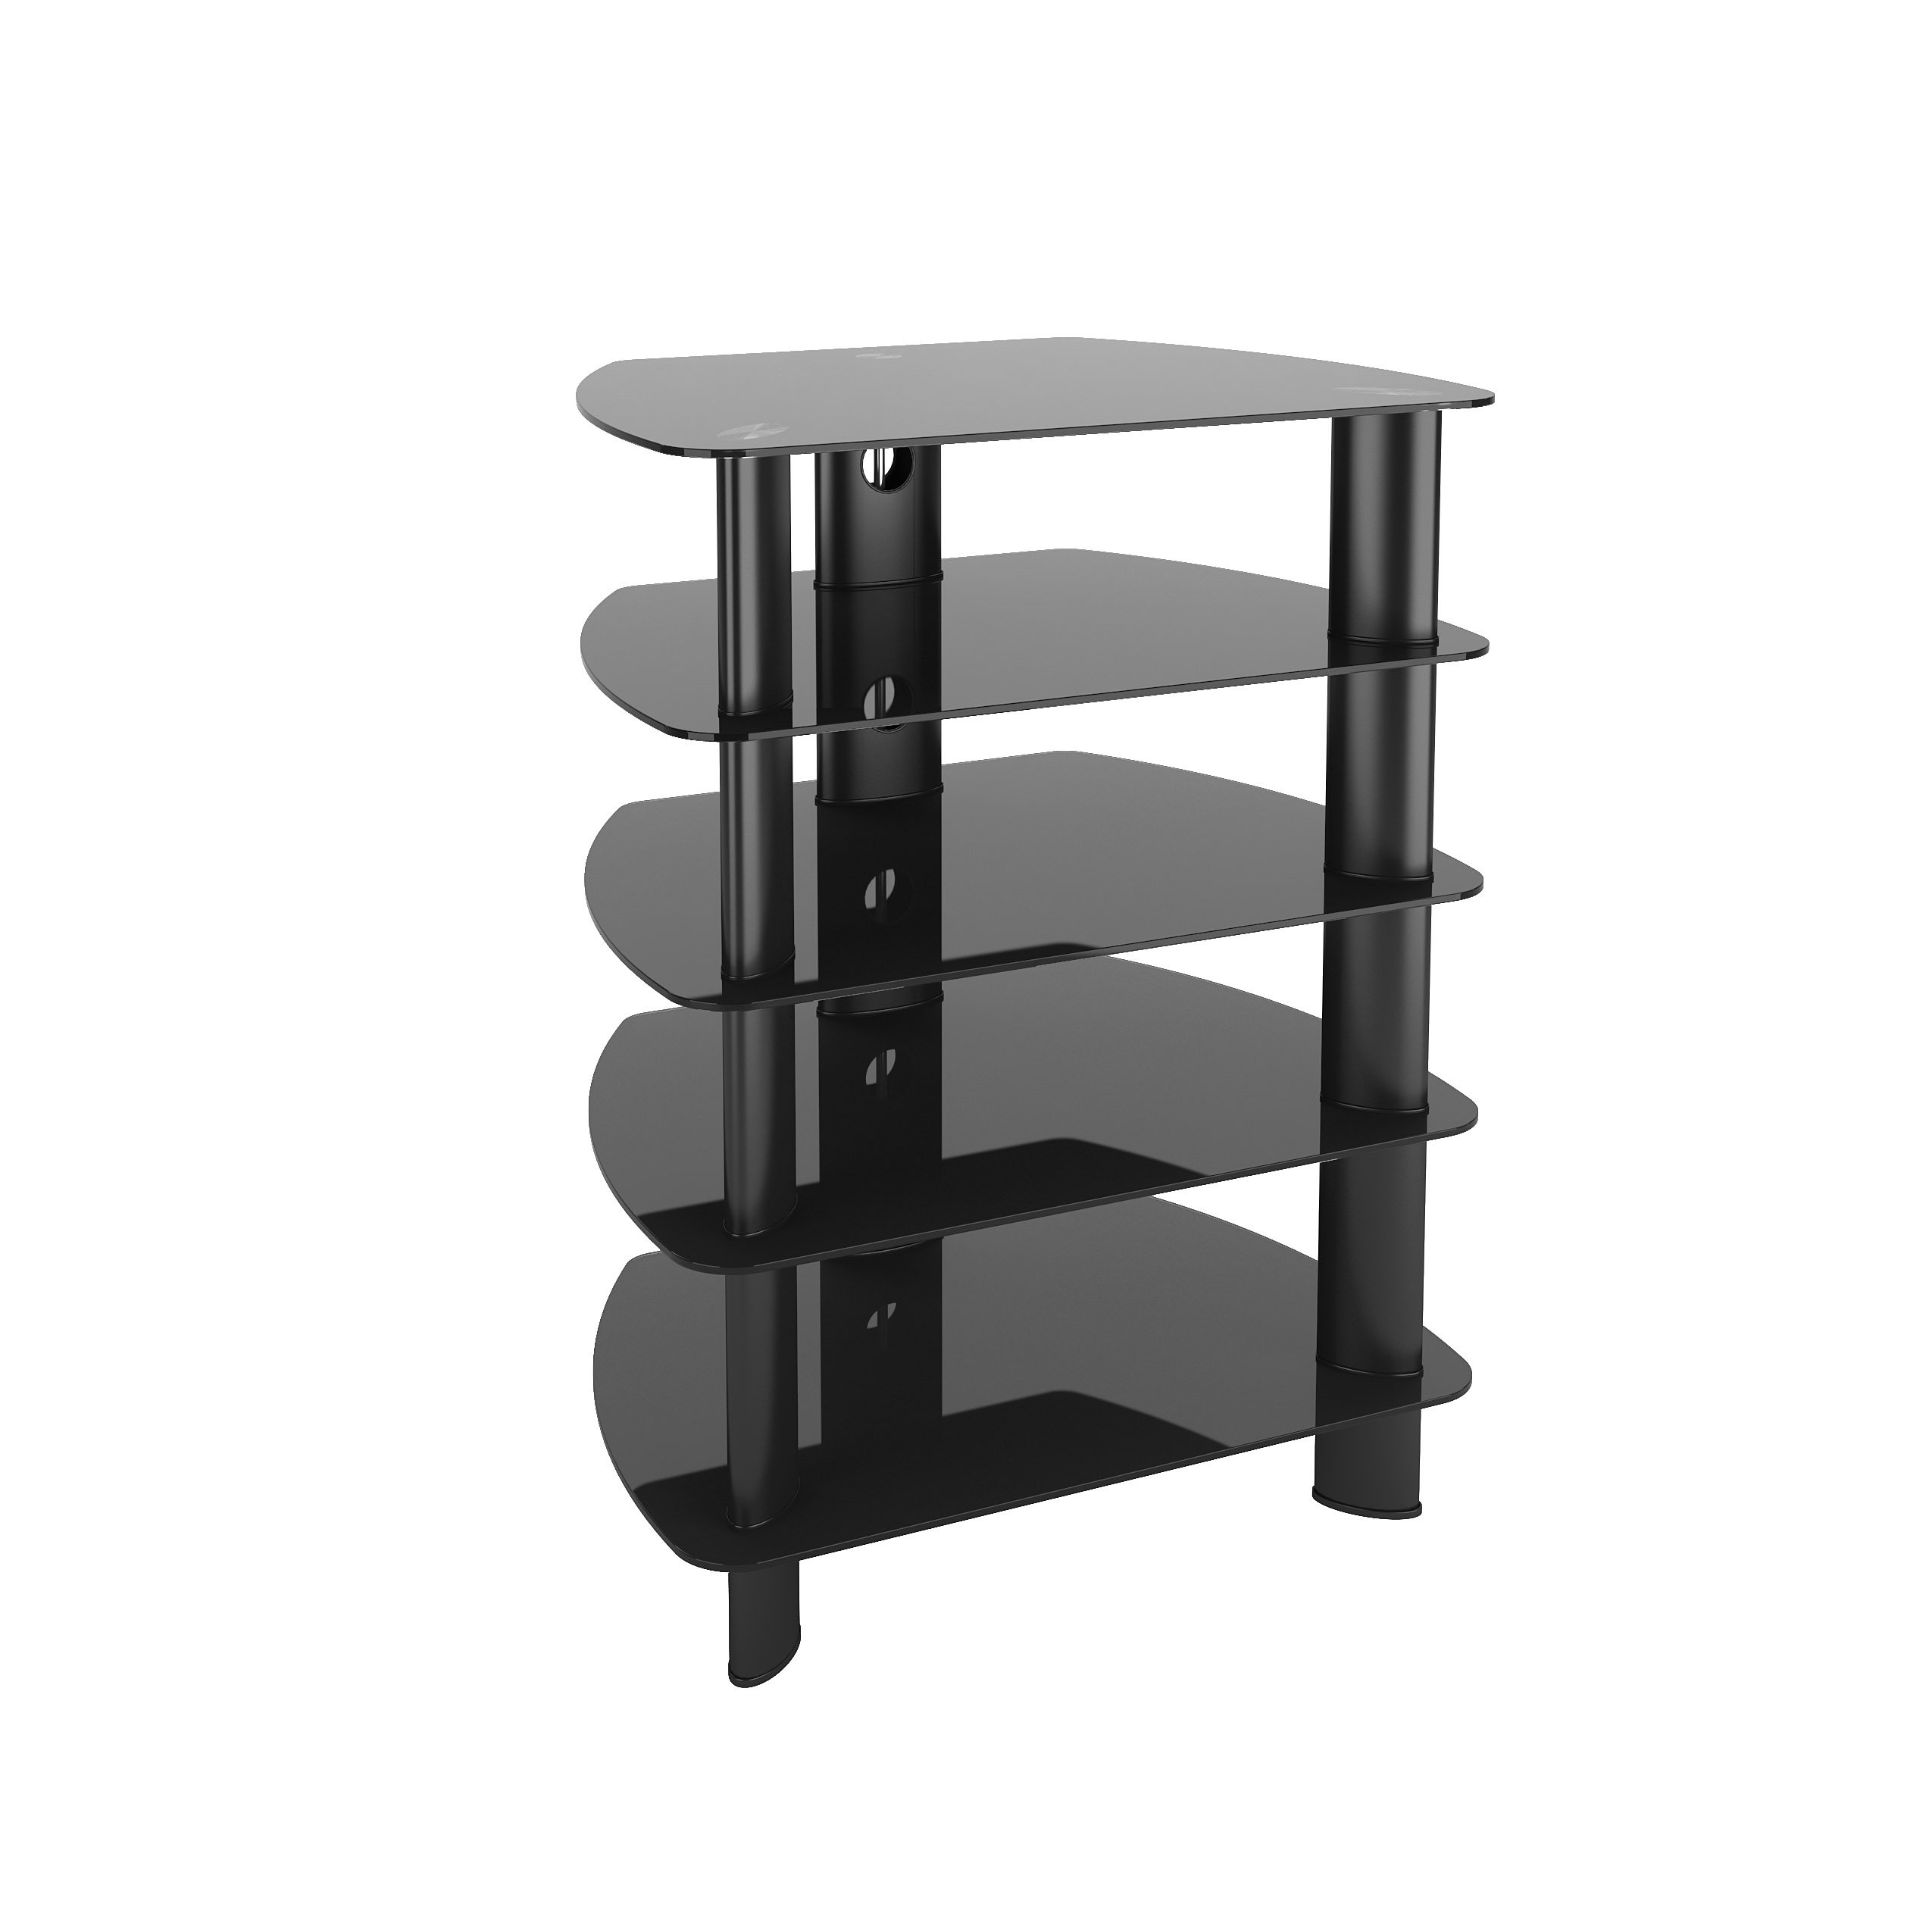 CorLiving TRL-801-C Laguna Satin Black Glass Component Stand Shelves, Audio Video Component Storage